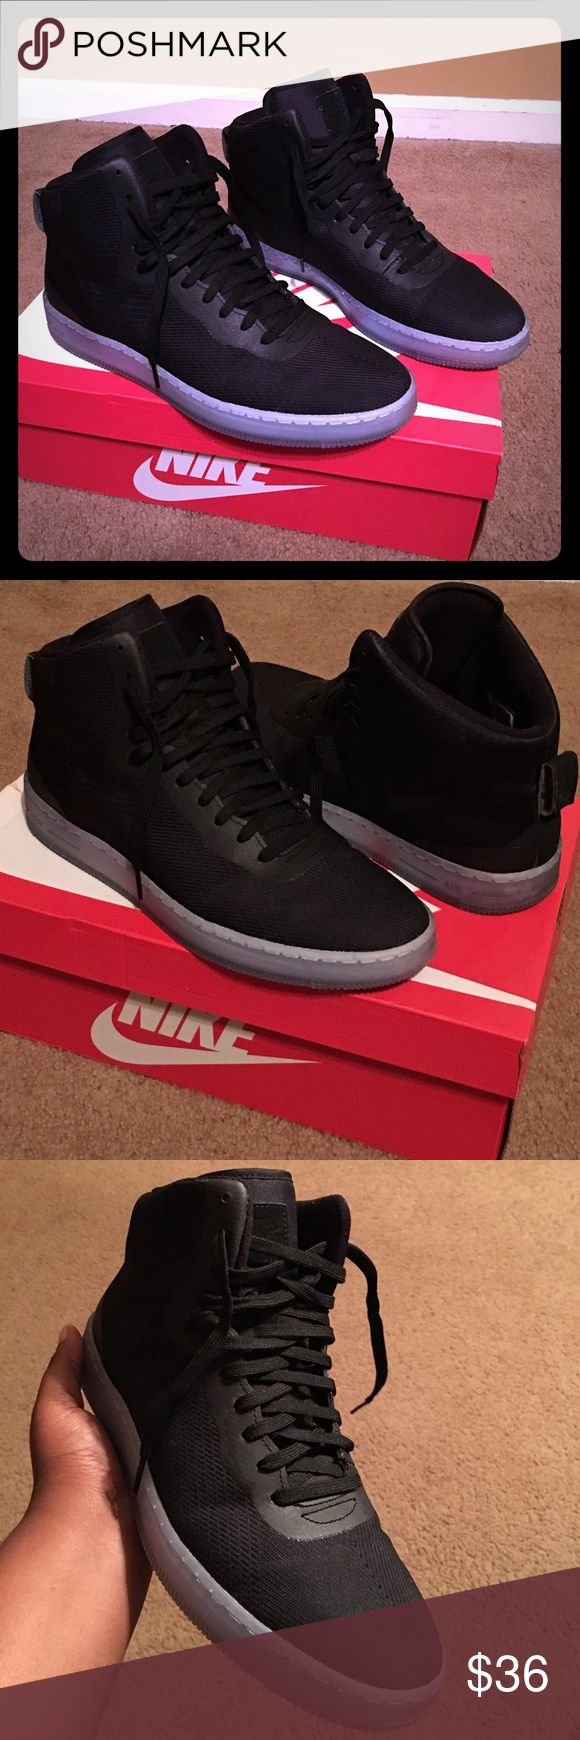 Nike pro stepper Only worn 2 times! All black Nike shoes with icy blue bottoms!!  very nice, like new Nike Shoes Sneakers